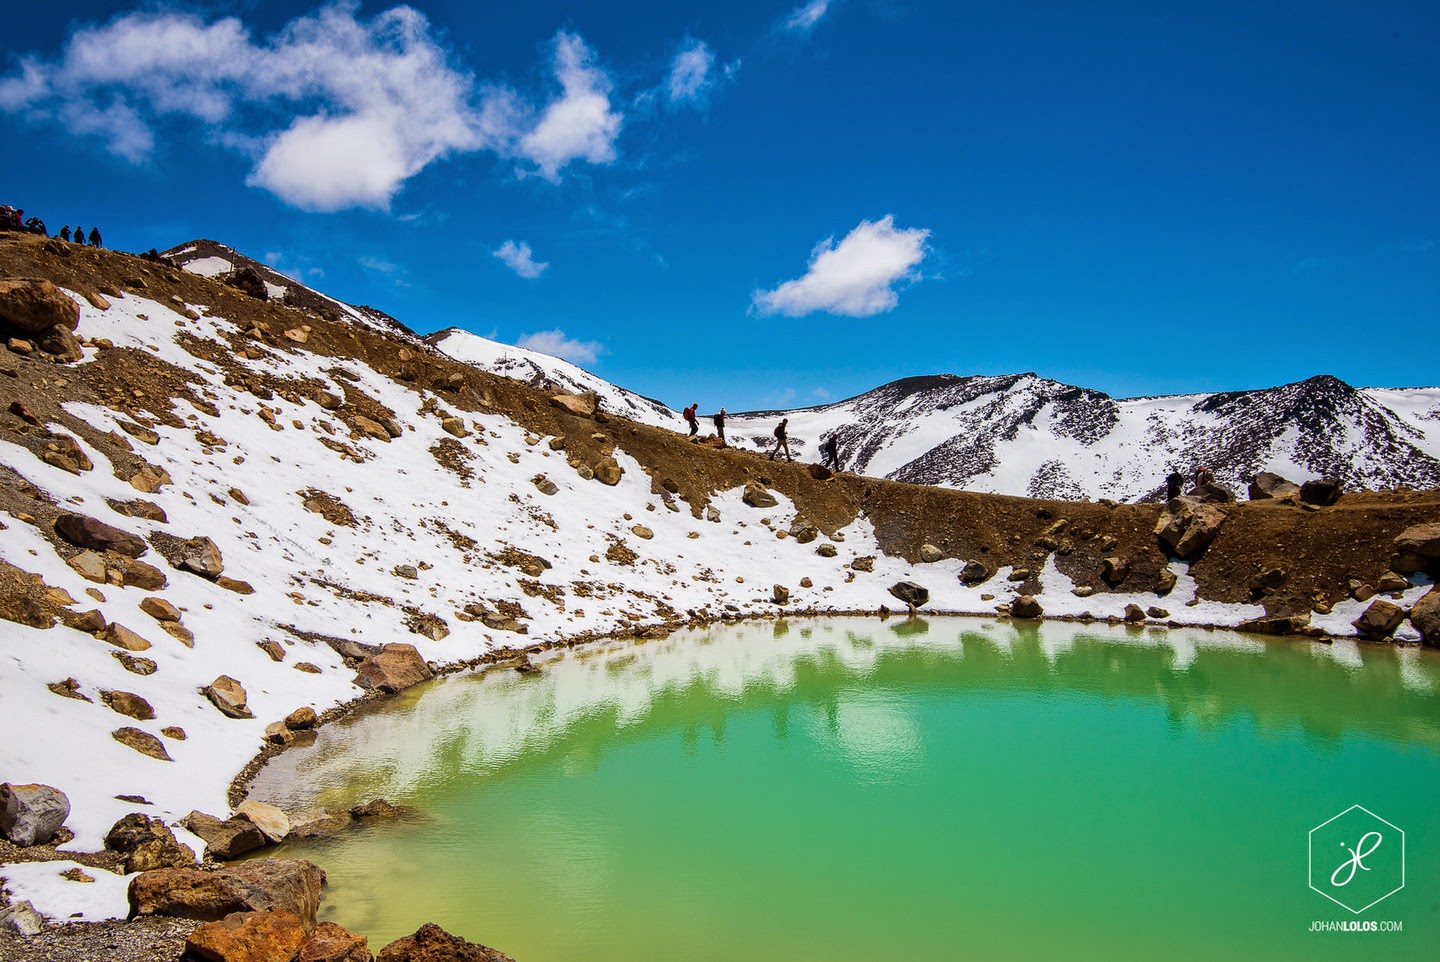 Tongariro Alpine Crossing - He Traveled Around New Zealand In A Camper Van… This Is What He Saw.